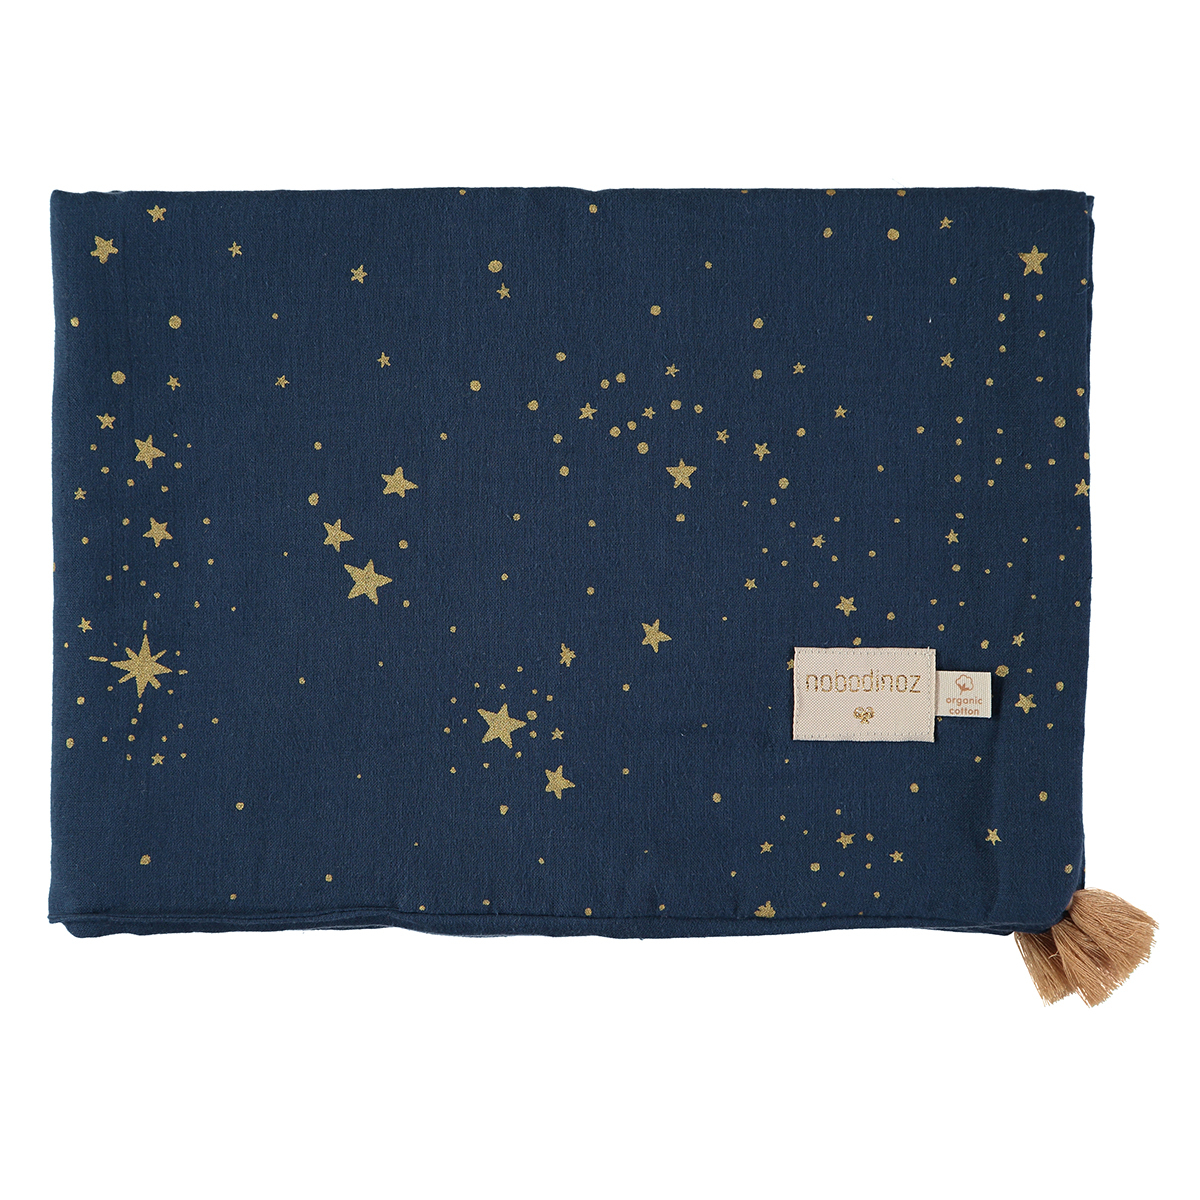 Linge de lit Couverture d'Eté Treasure - Gold Stella & Night Blue Couverture d'Eté Treasure - Gold Stella & Night Blue